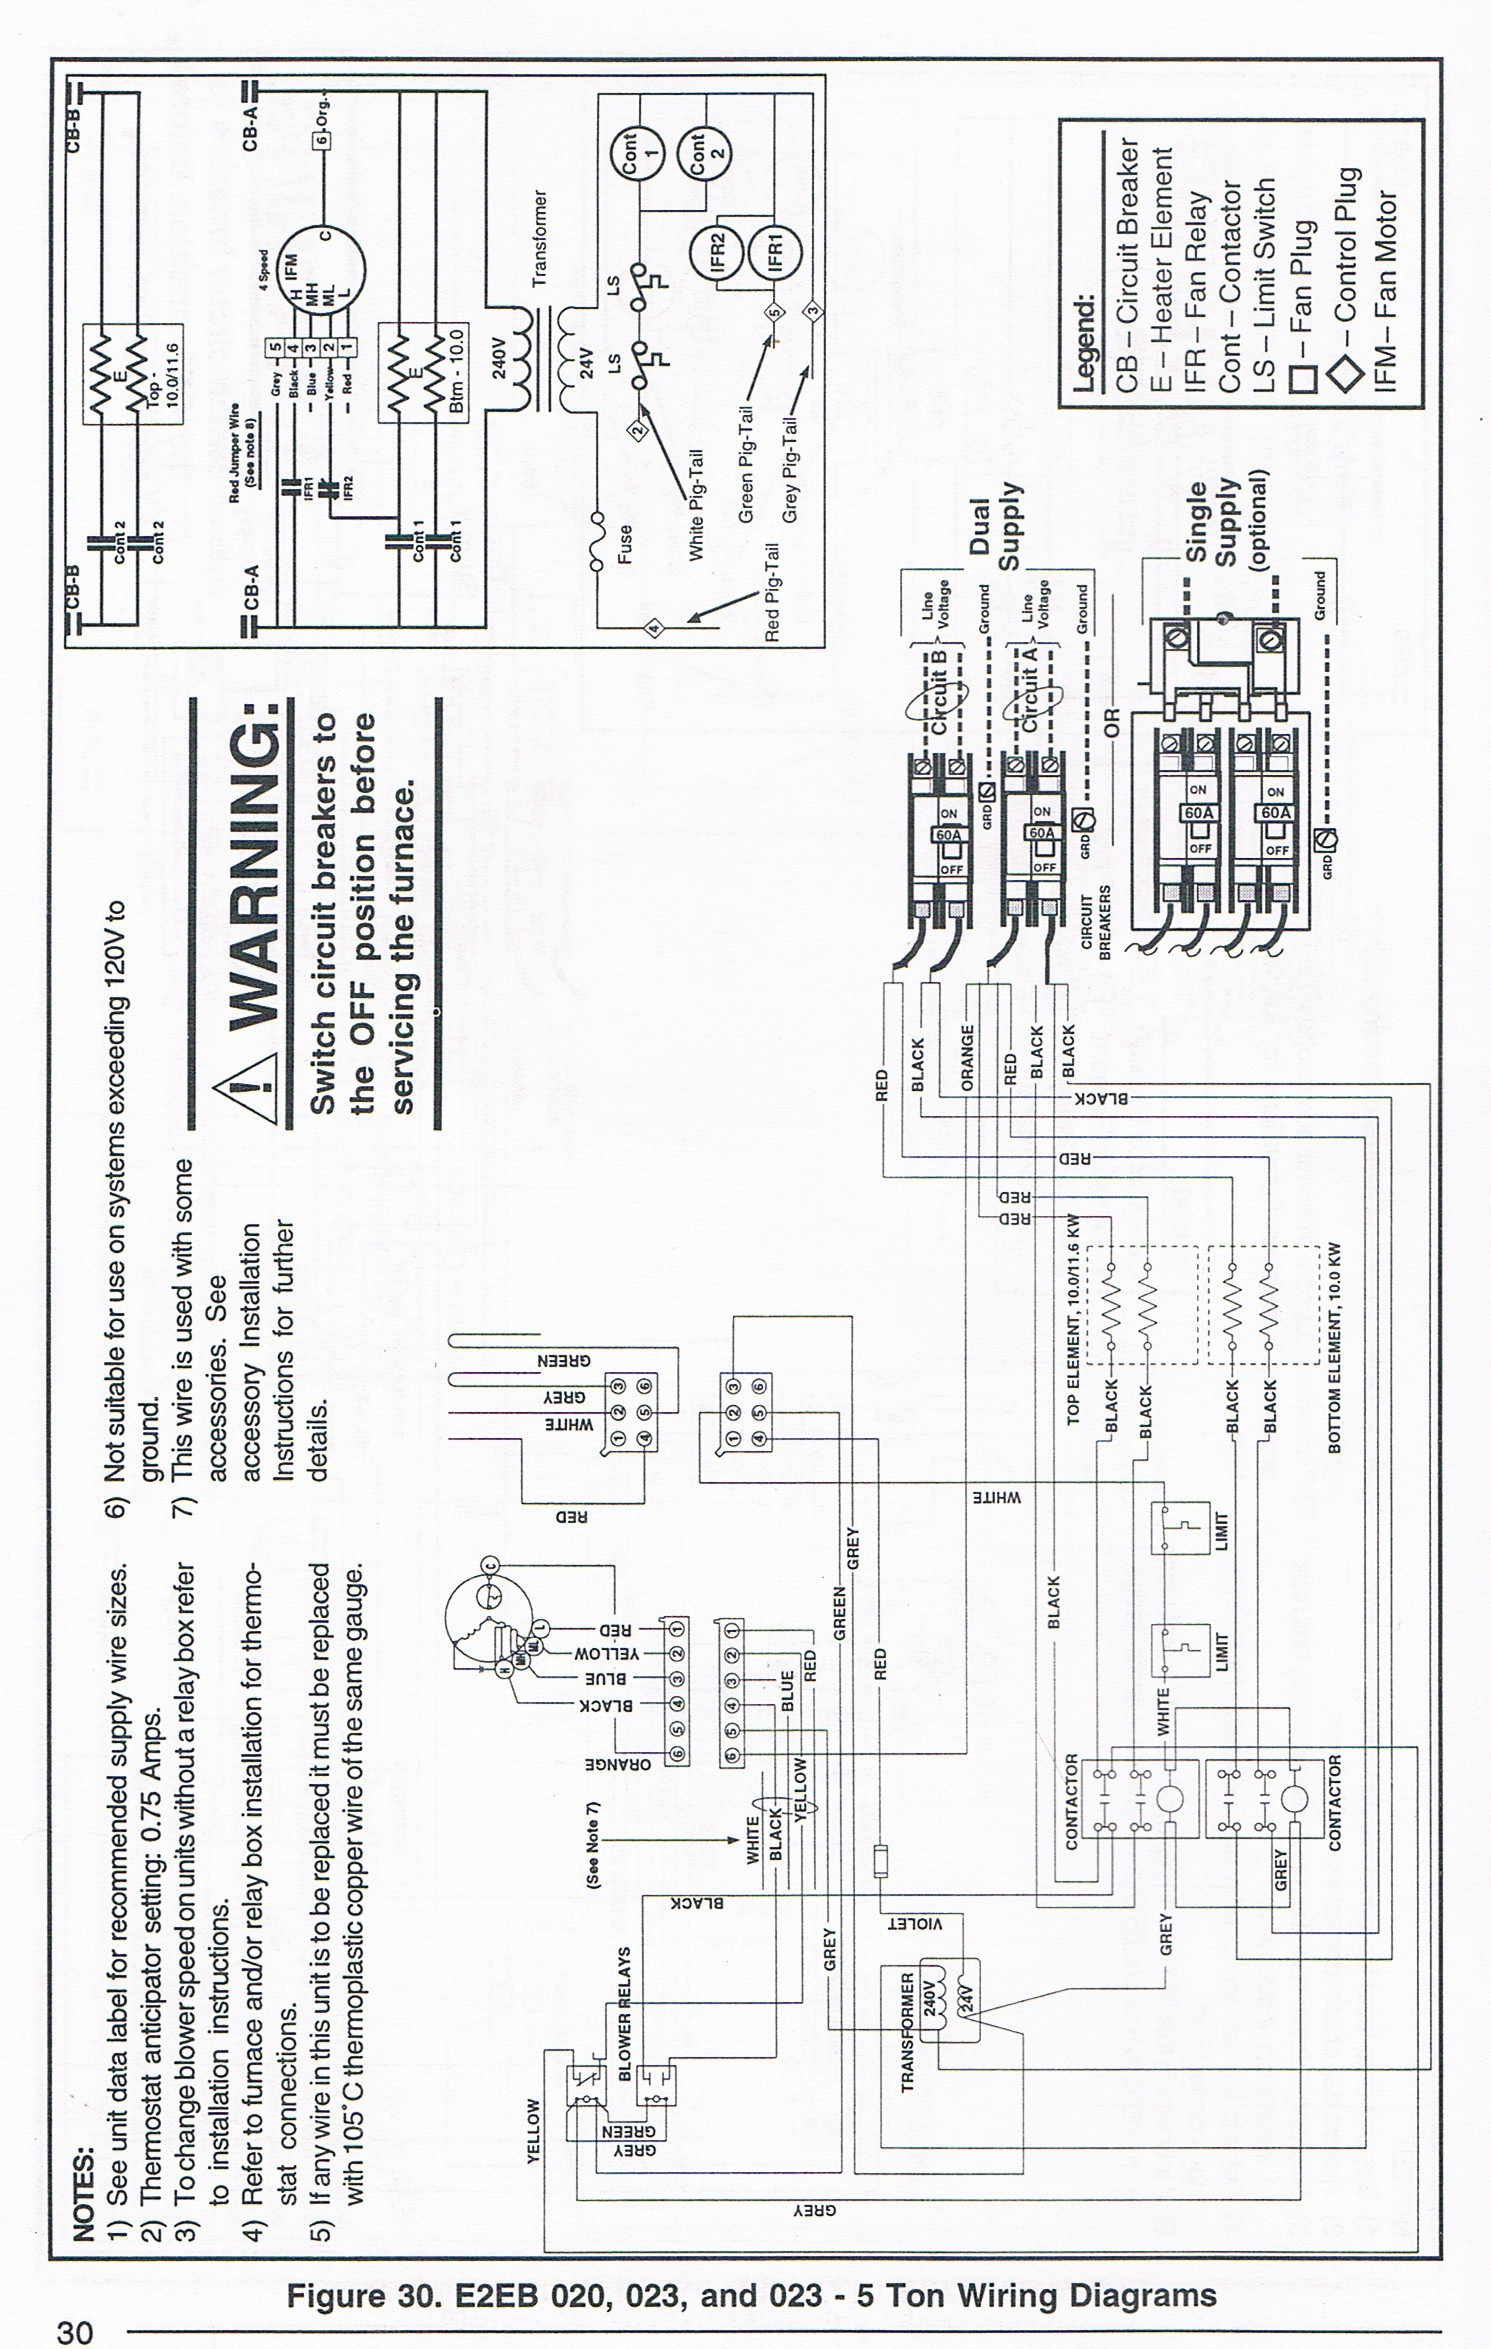 Intertherm Electric Furnace Wiring Diagram Inspirational Nordyne - Intertherm Electric Furnace Wiring Diagram